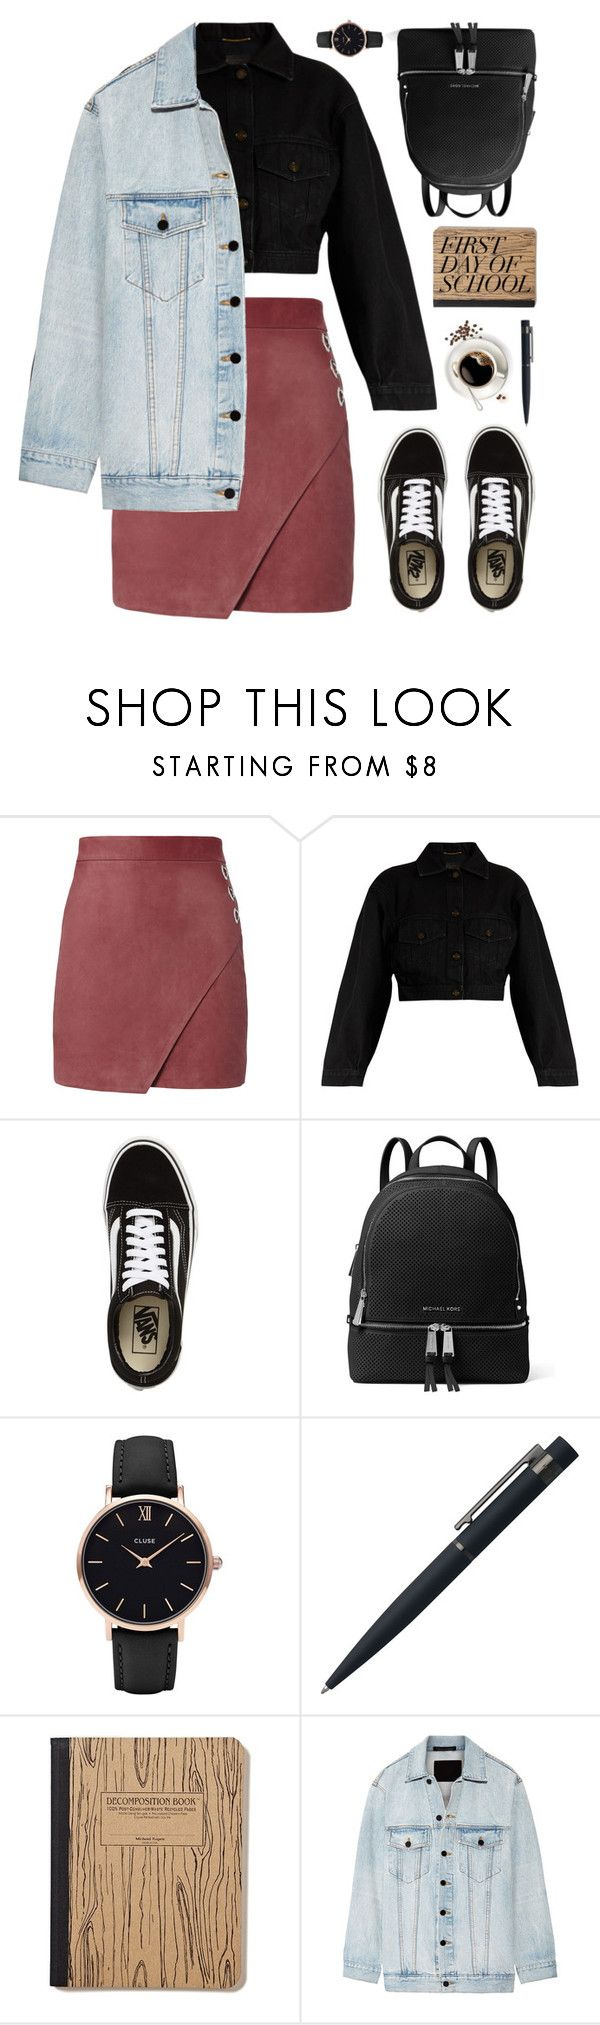 """Untitled #212"" by fanfanfann ❤ liked on Polyvore featuring Michelle Mason, Yves Saint Laurent, Vans, MICHAEL Michael Kors, CLUSE, John Lewis and Alexander Wang"